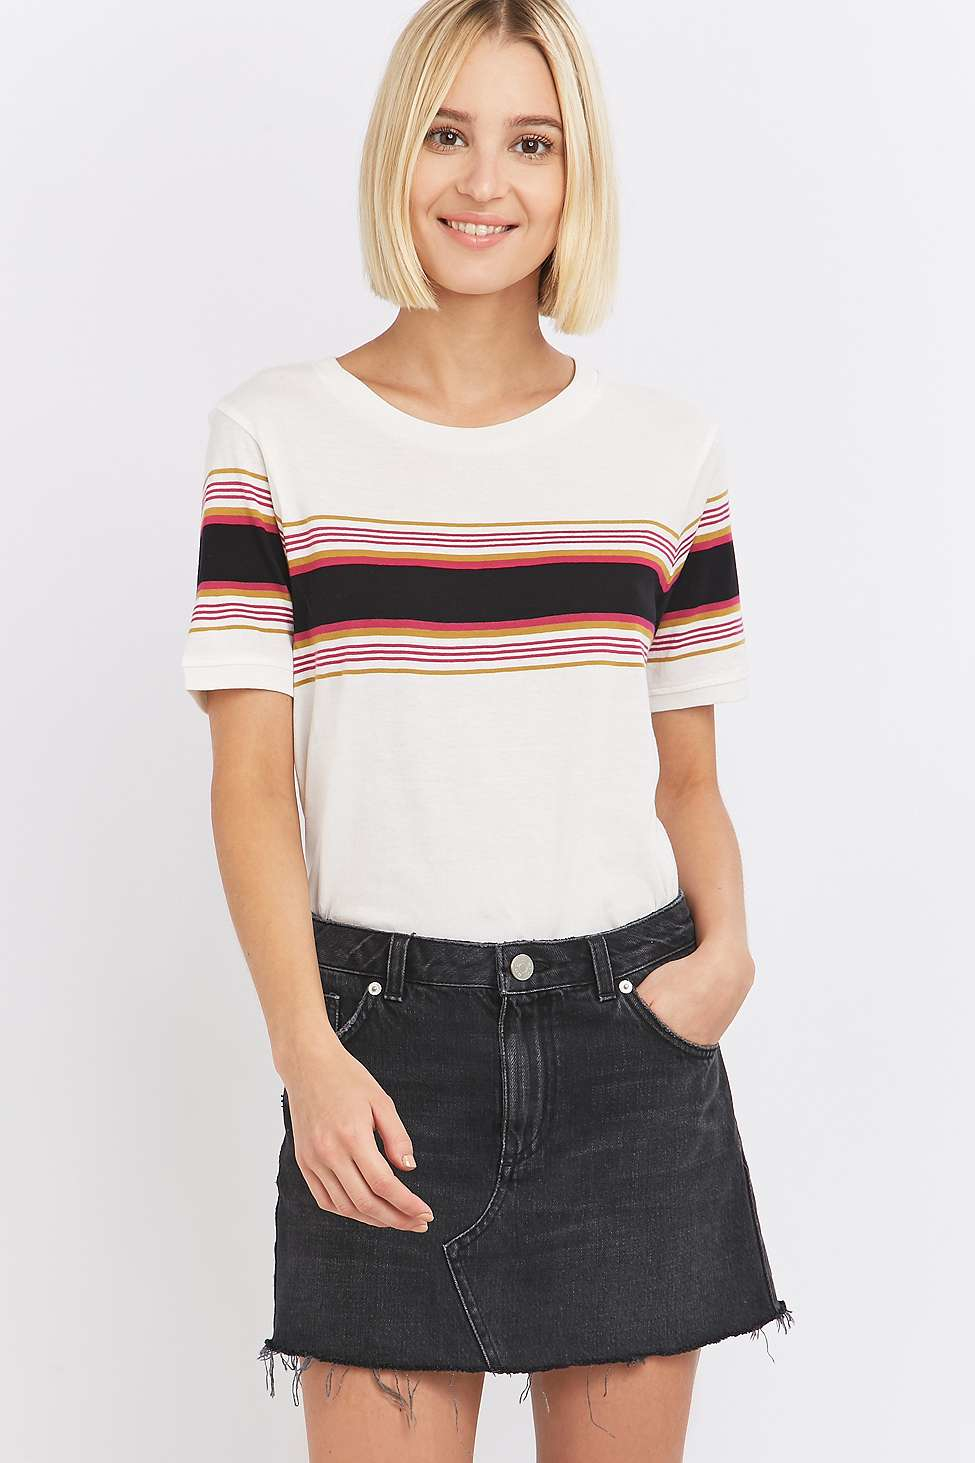 Lyst bdg purple placement striped t shirt in black for Purple and black striped t shirt